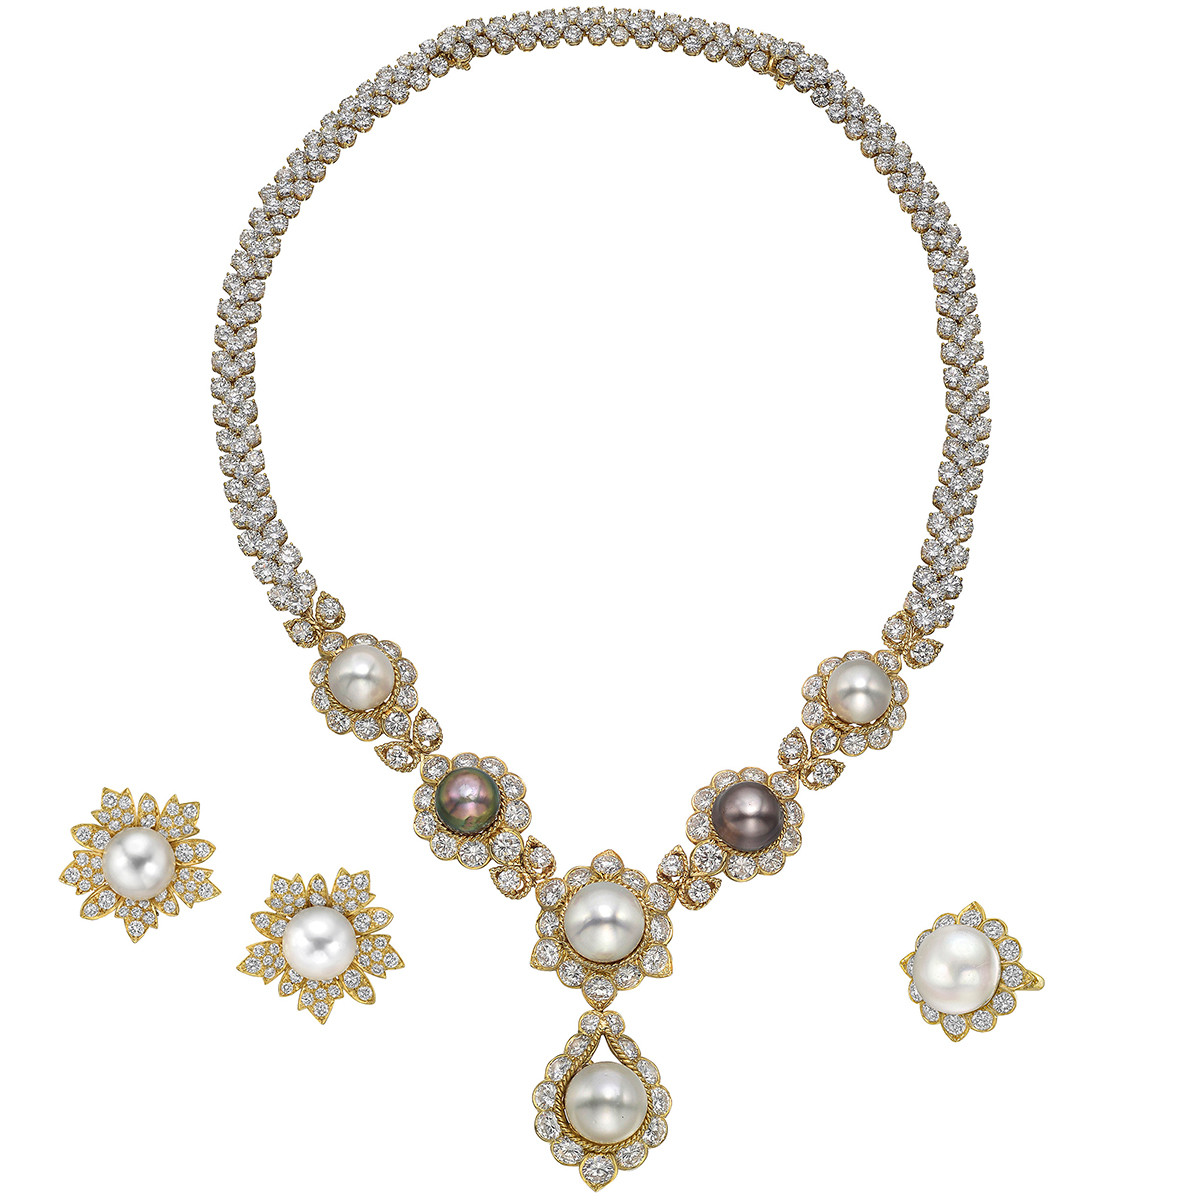 South Sea Pearl & Diamond Jewelry Suite